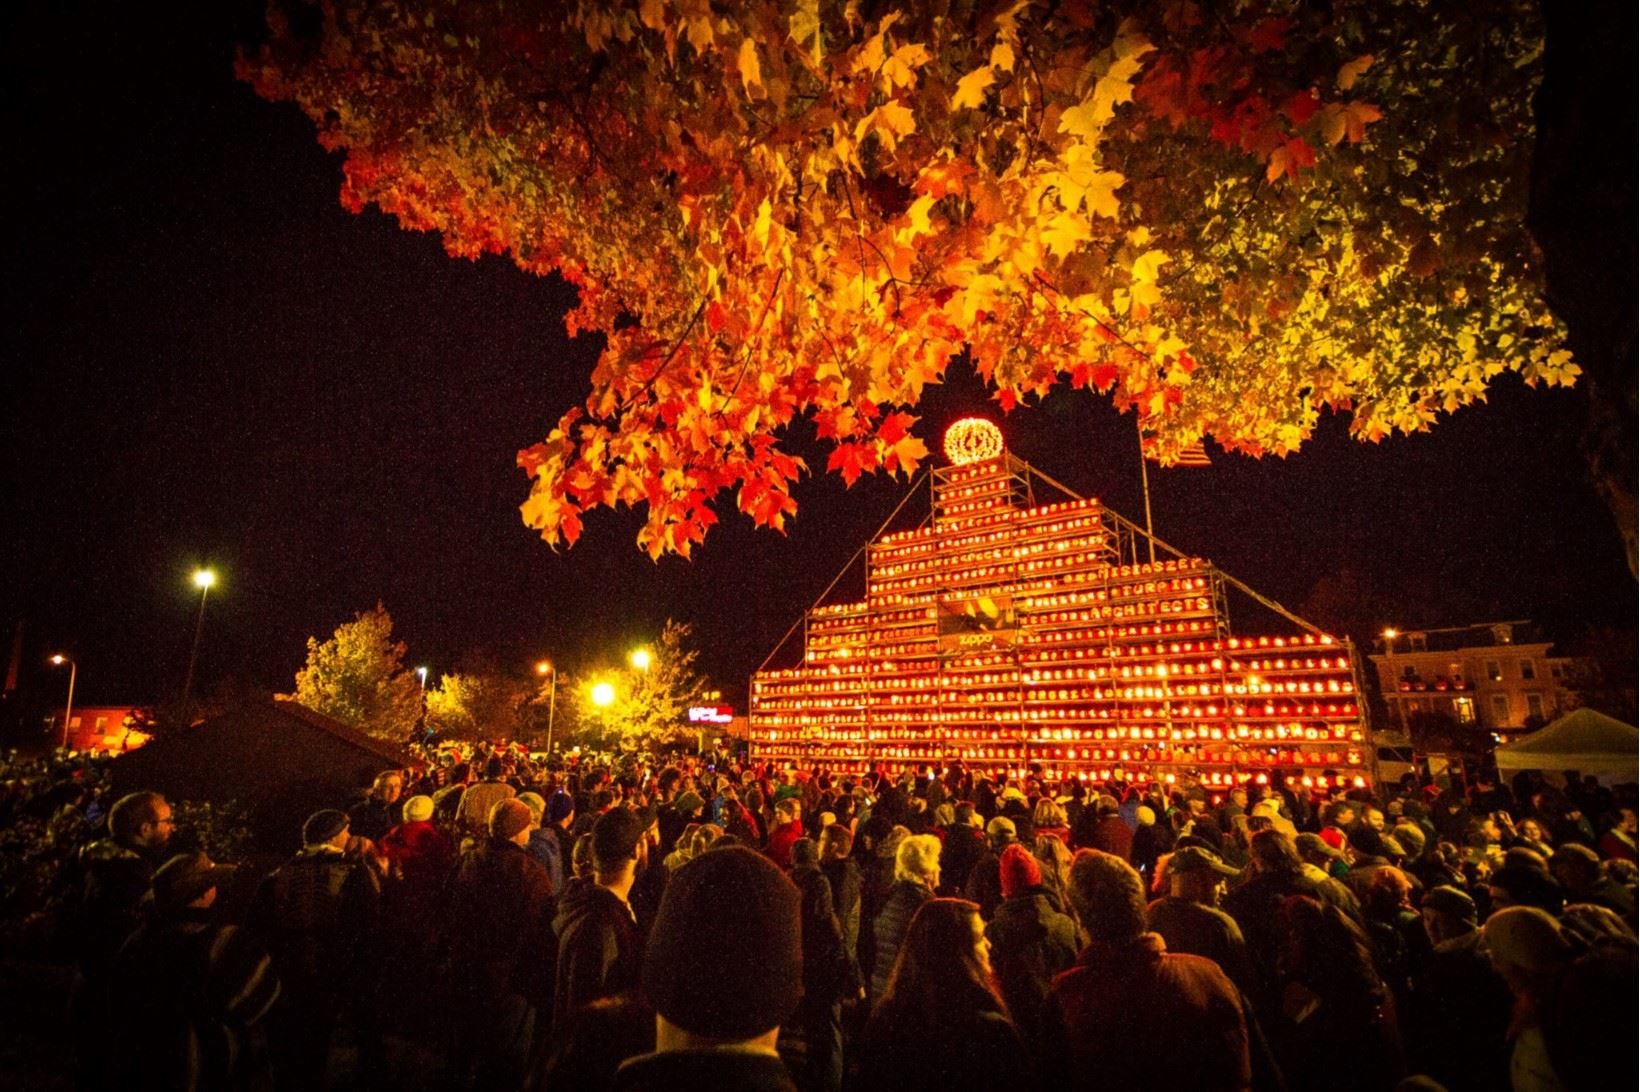 Pumpkin Festival Tower Photo